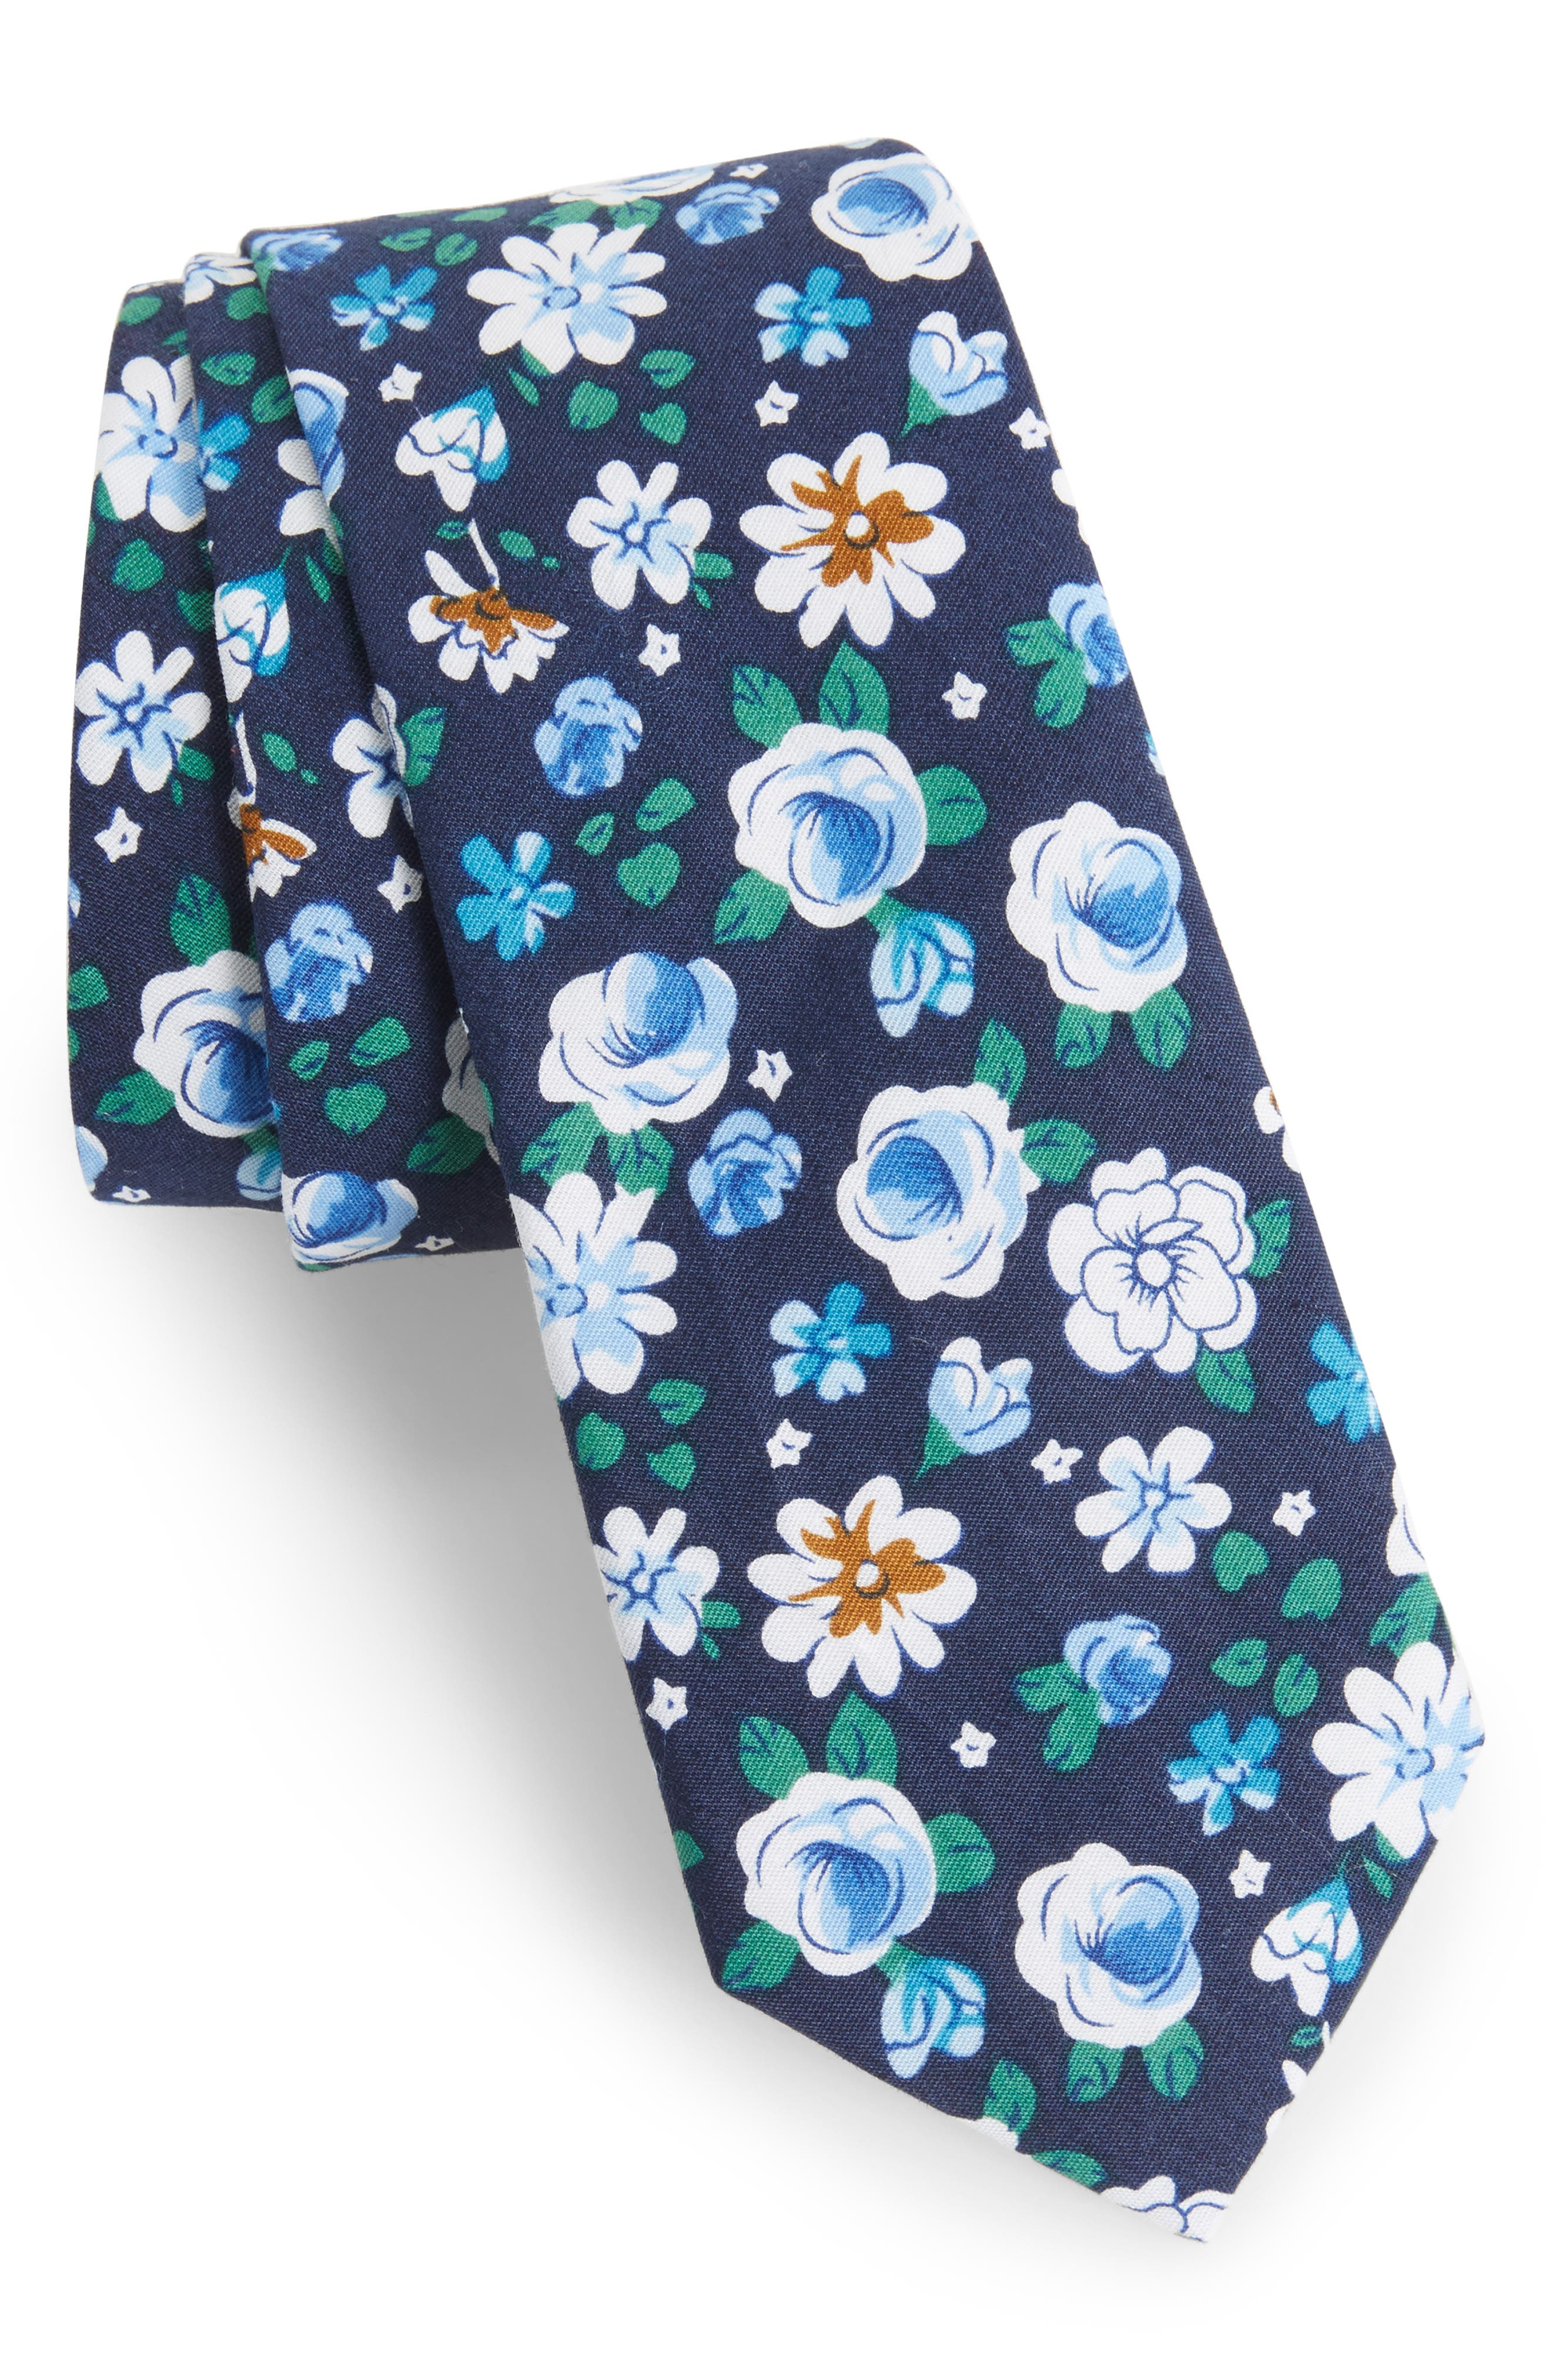 Frenso Floral Cotton Skinny Tie,                         Main,                         color,